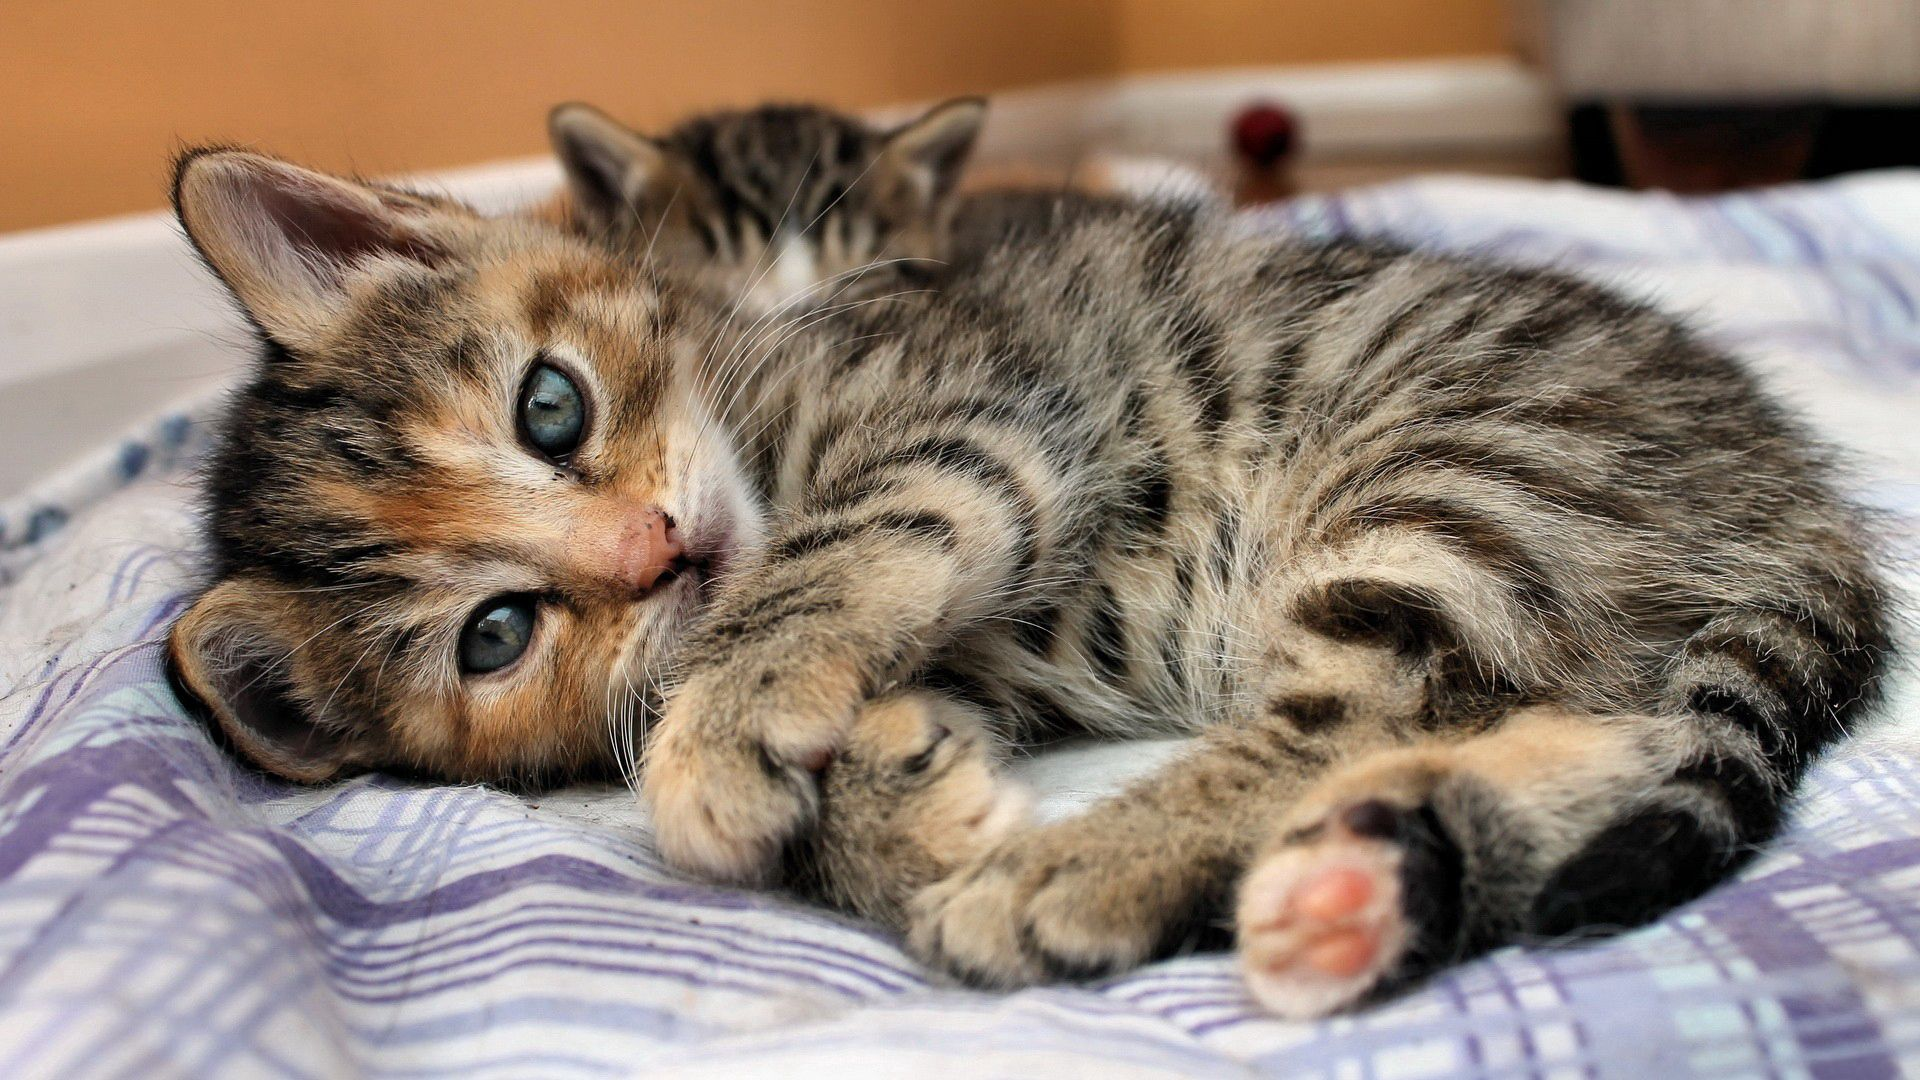 140348 Screensavers and Wallpapers Kitten for phone. Download Animals, Cat, Lies, Kitty, Kitten, Eyes, Sight, Opinion, Stripes, Bed, Strips pictures for free